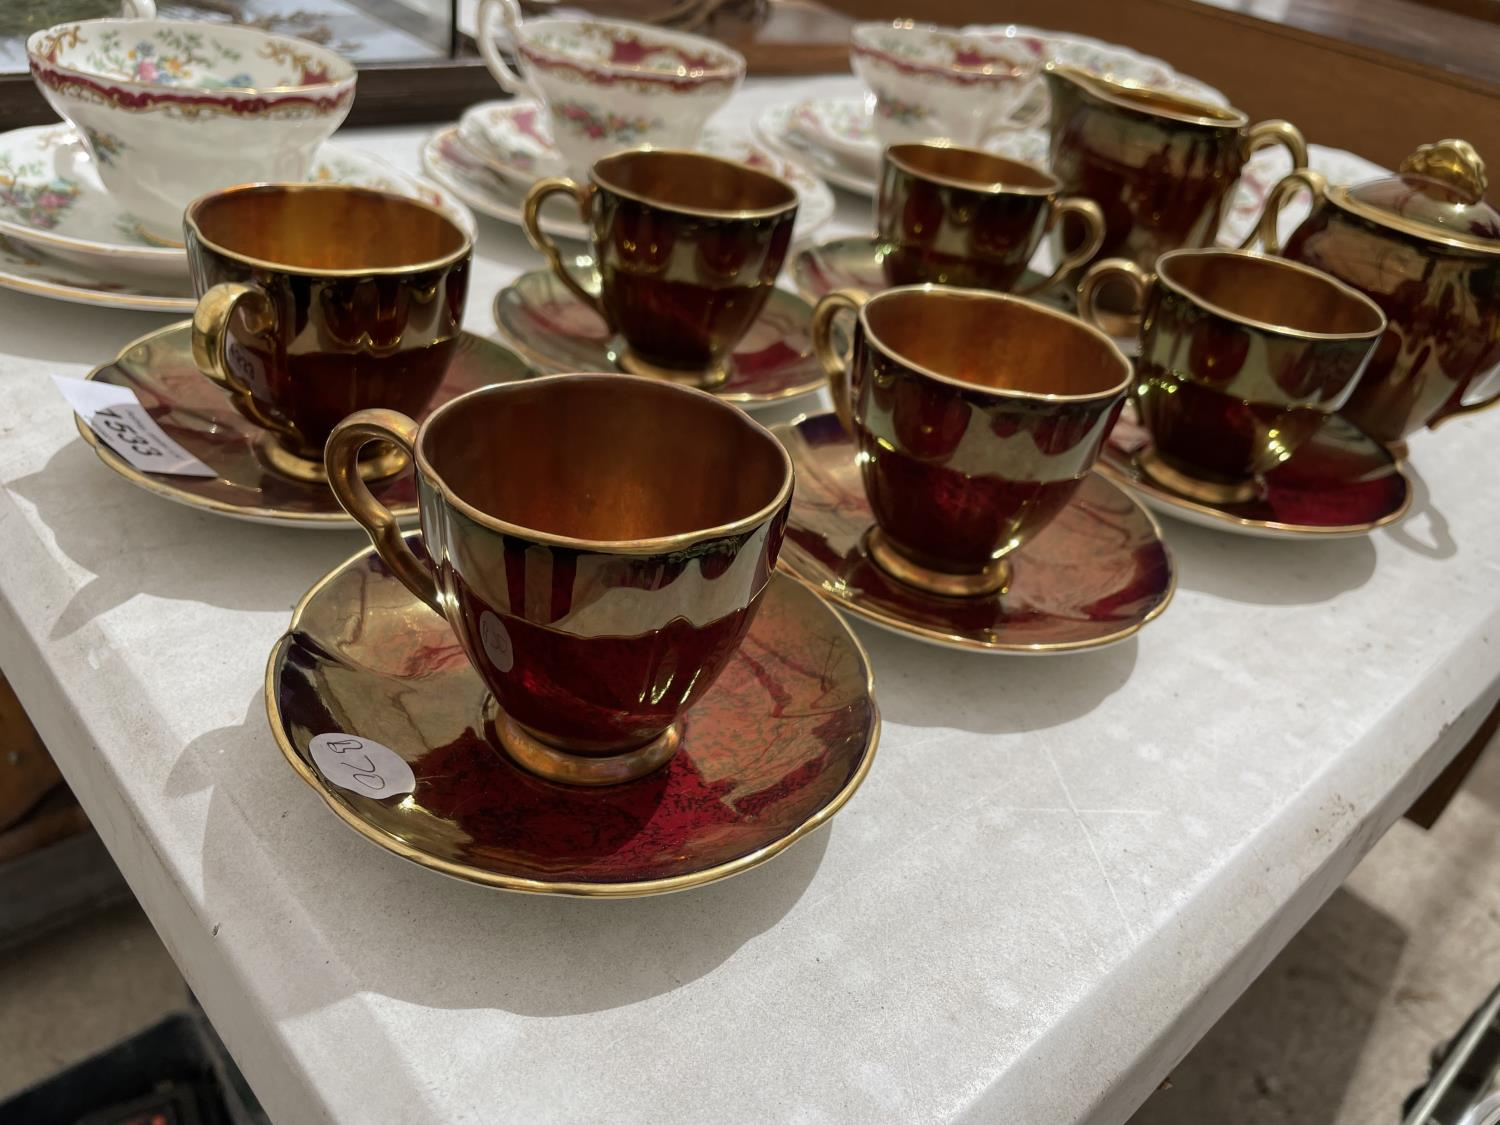 AN ASSORTMENT OF CERAMIC WARE TO INCLUDE A CARLTON WARE COFFEE SERVICE SET AND FLORAL TRIOS ETC - Image 3 of 10